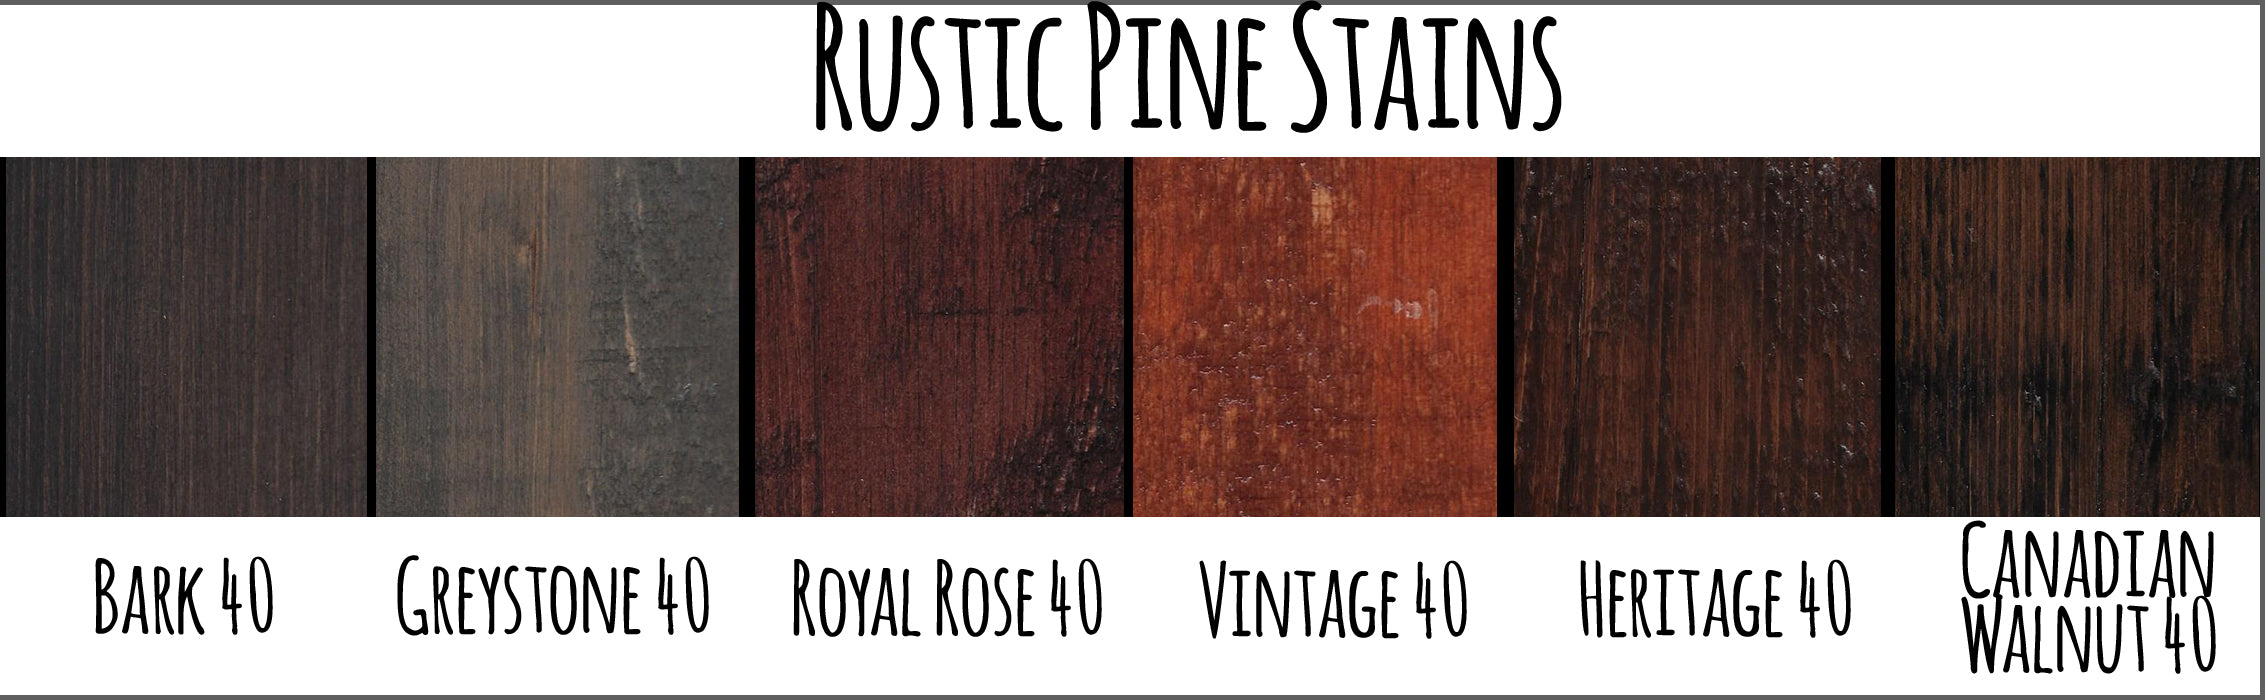 Rustic Pine Swatches